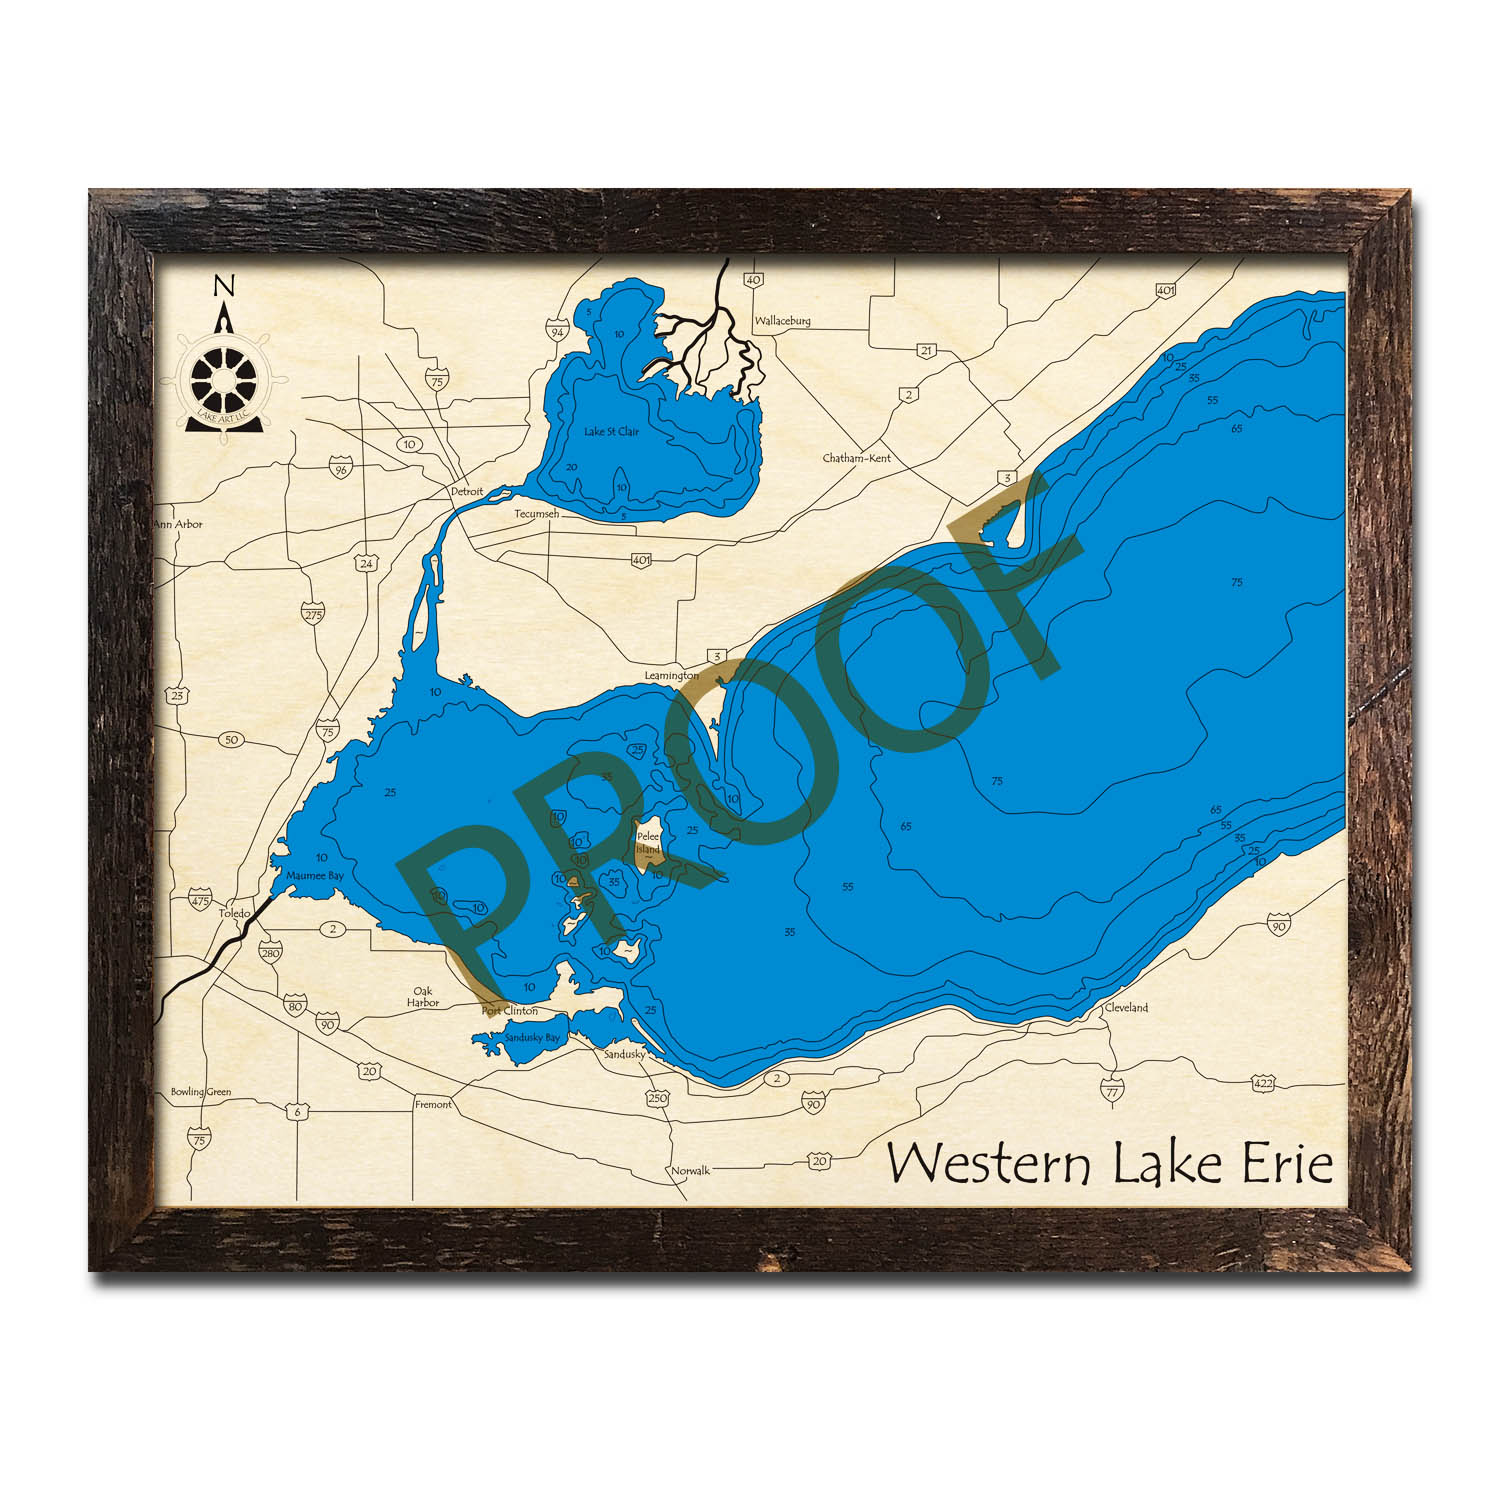 Western Lake Erie 3d wood map